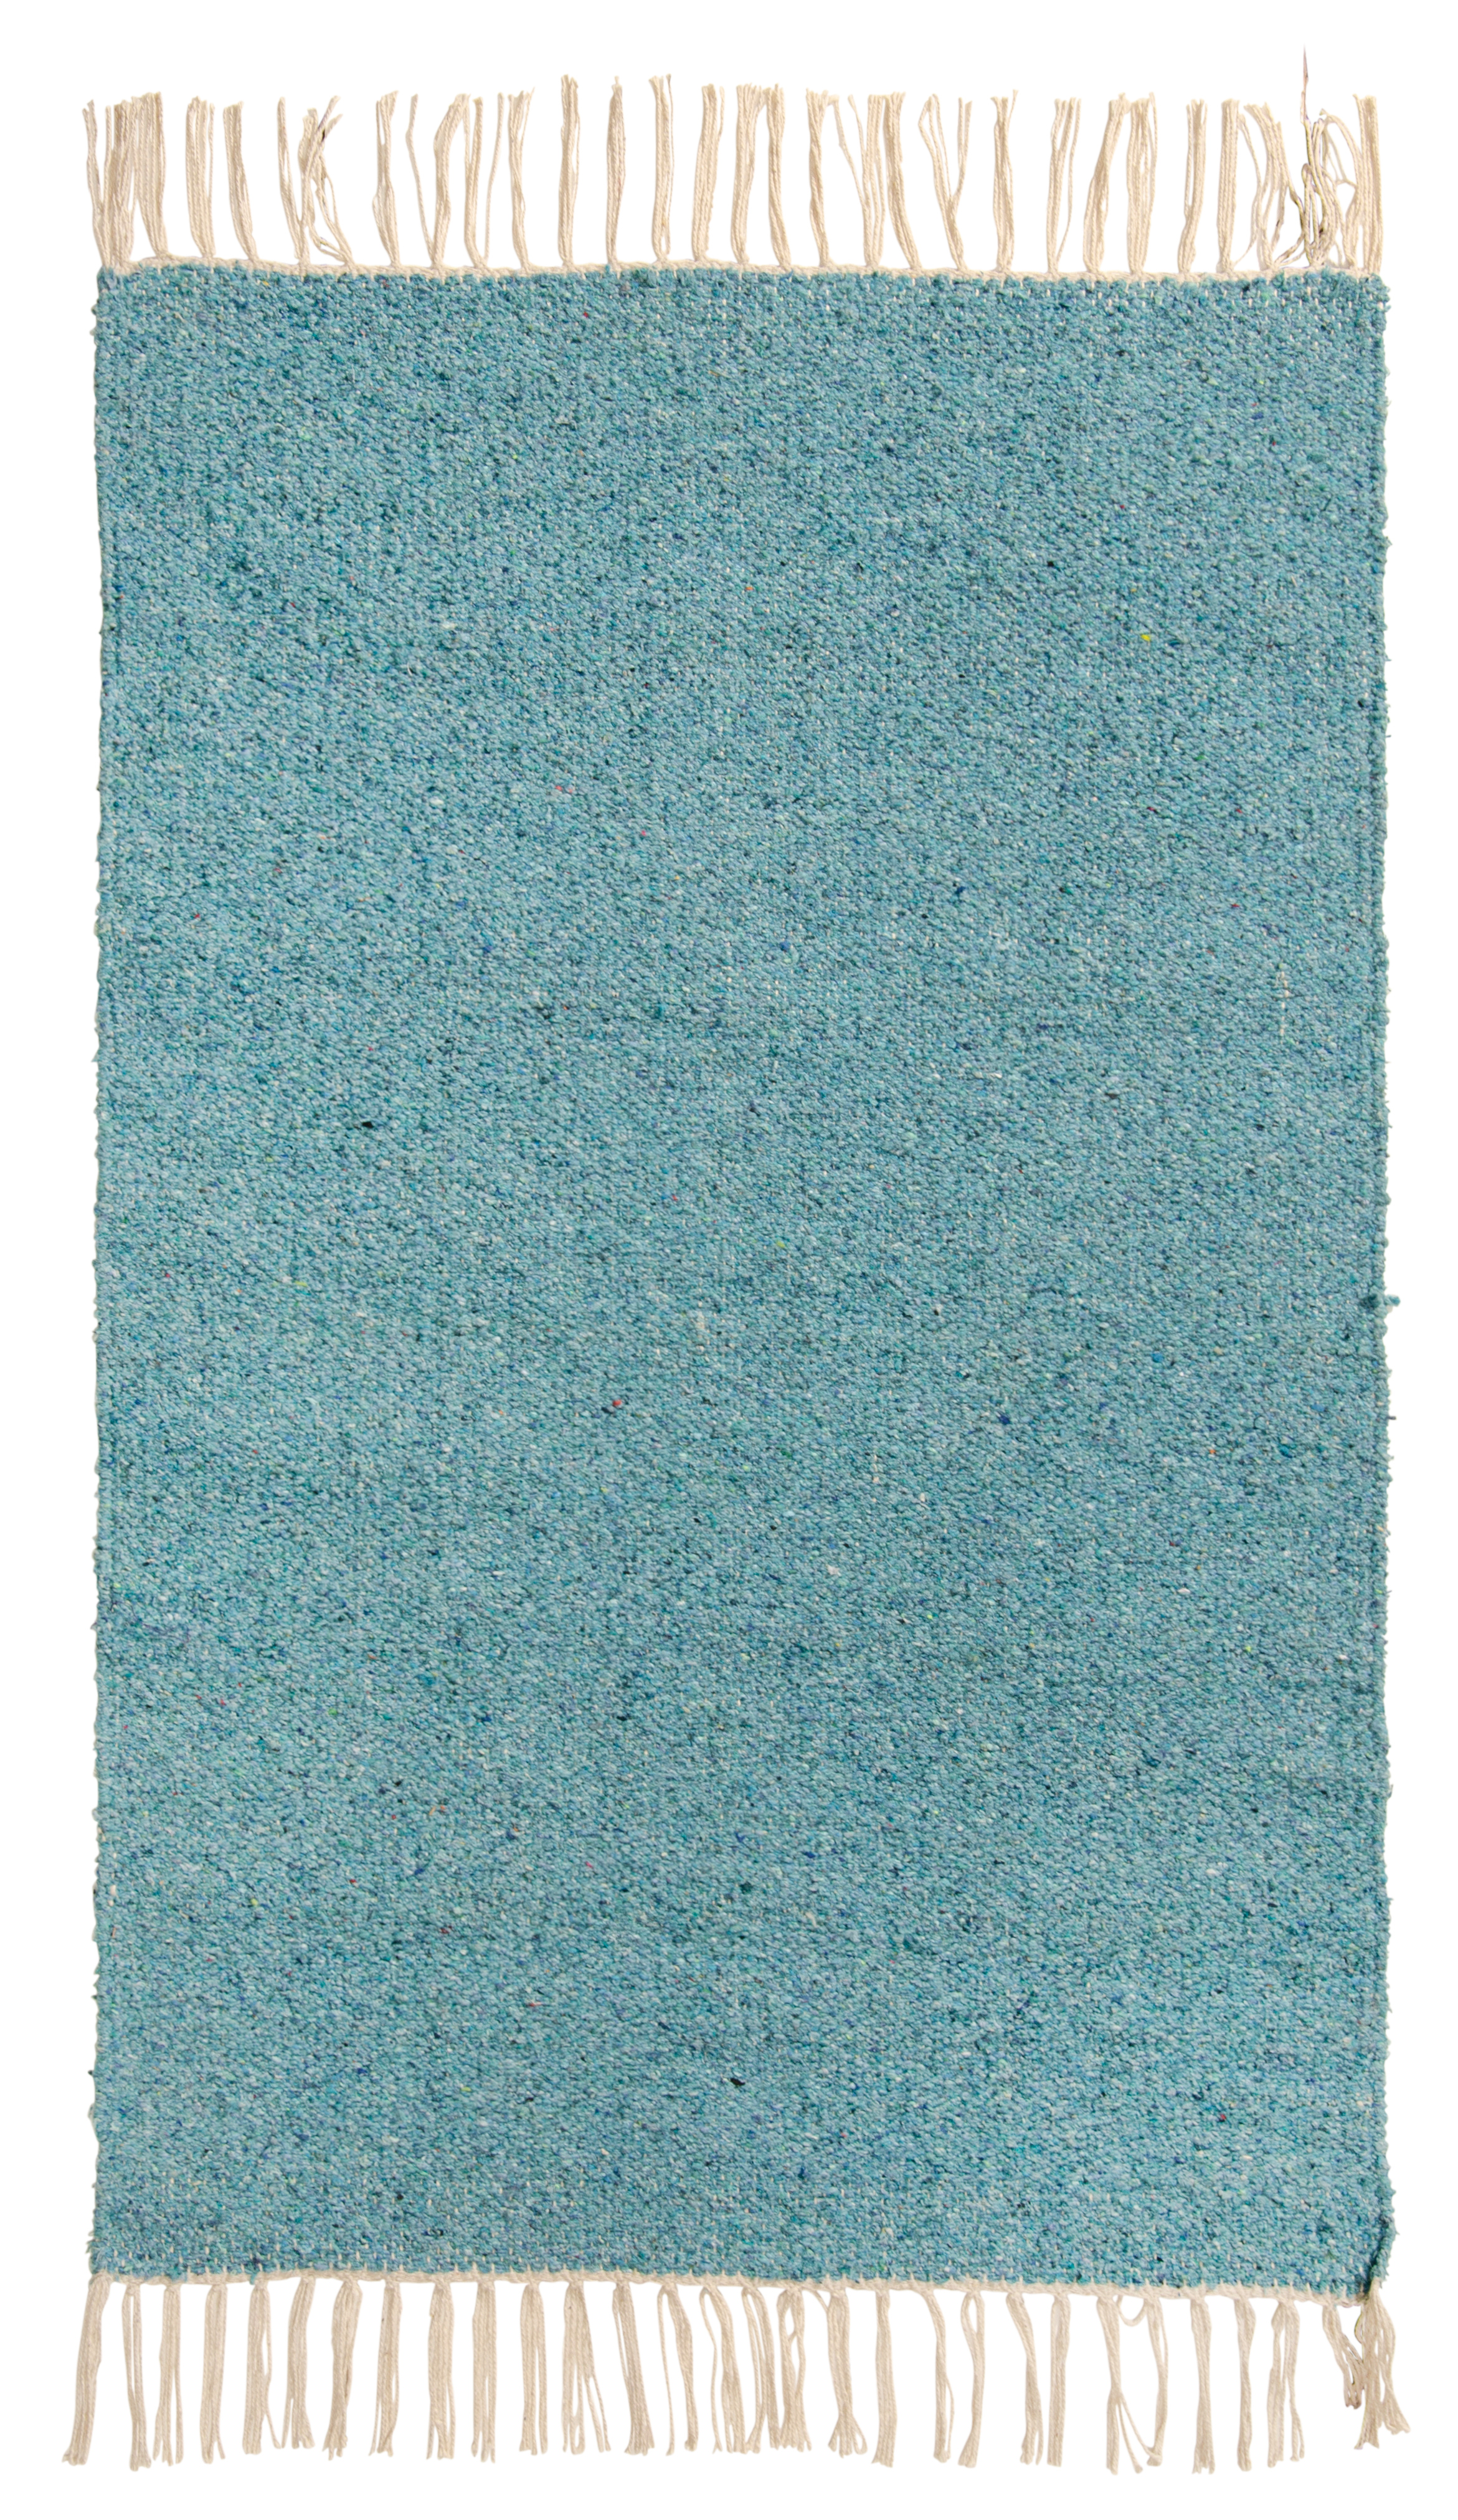 Plain Coloured Recycled Cotton Rug 60cm x 90cm in 11 Colours Fair Trade GoodWeave